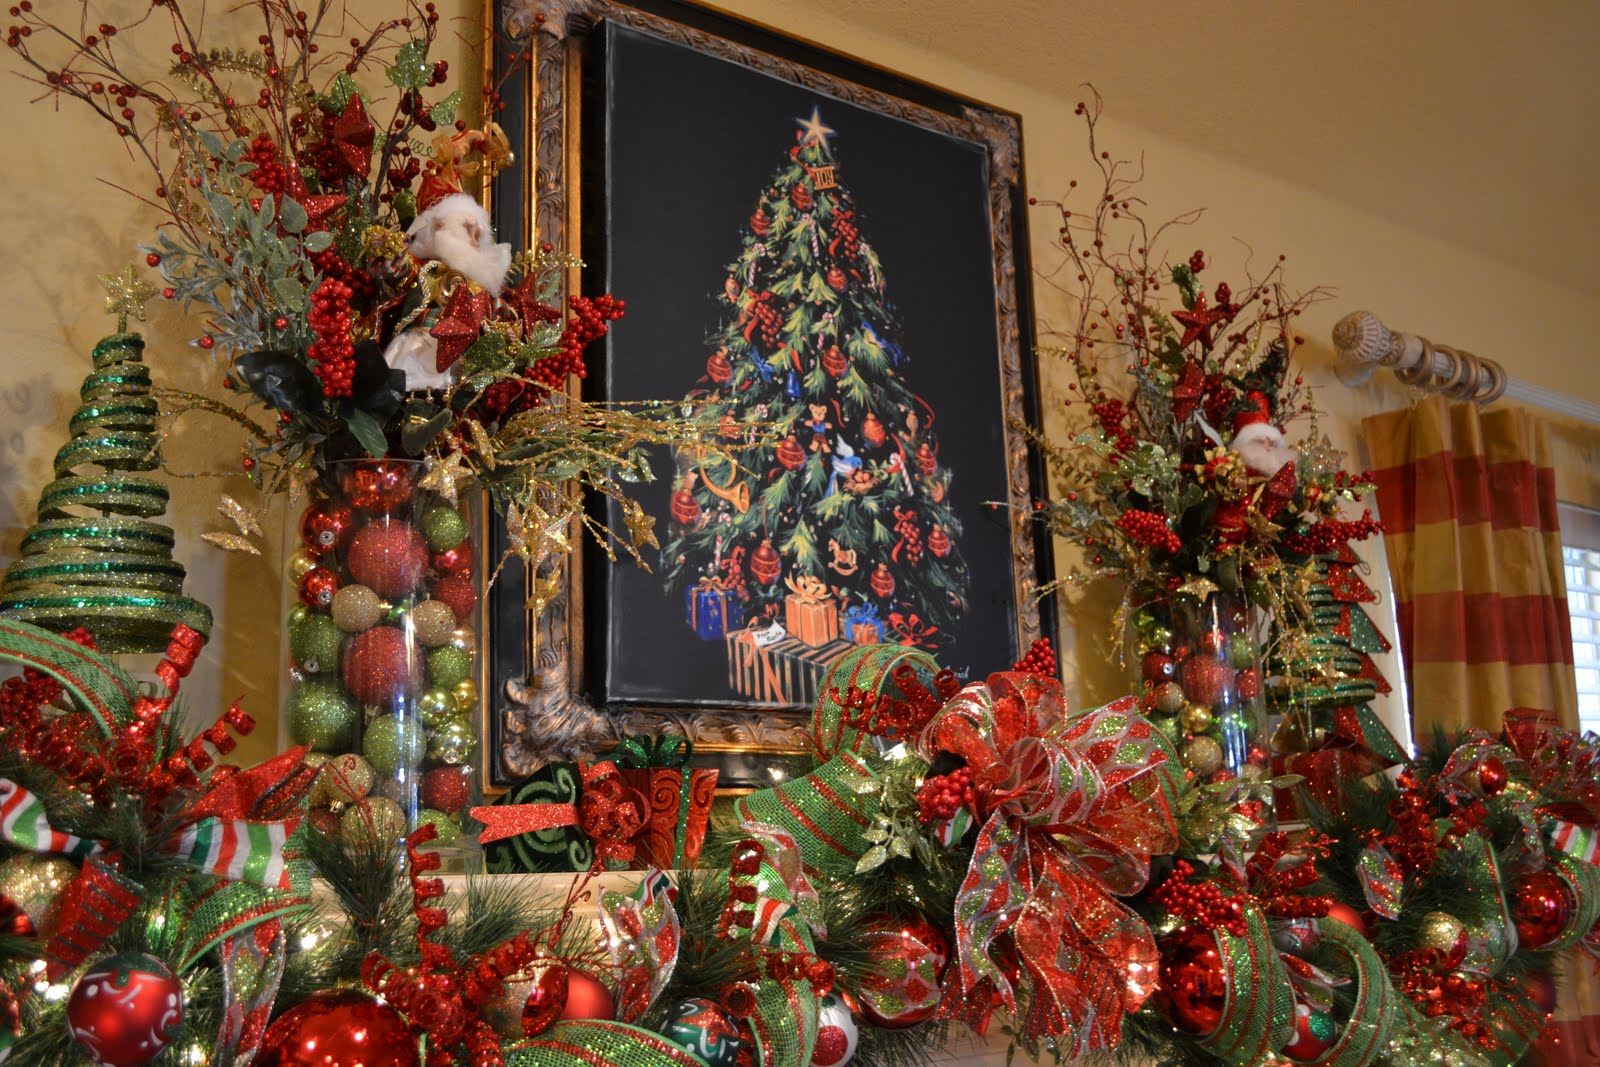 Kristen S Creations My Christmas Mantle